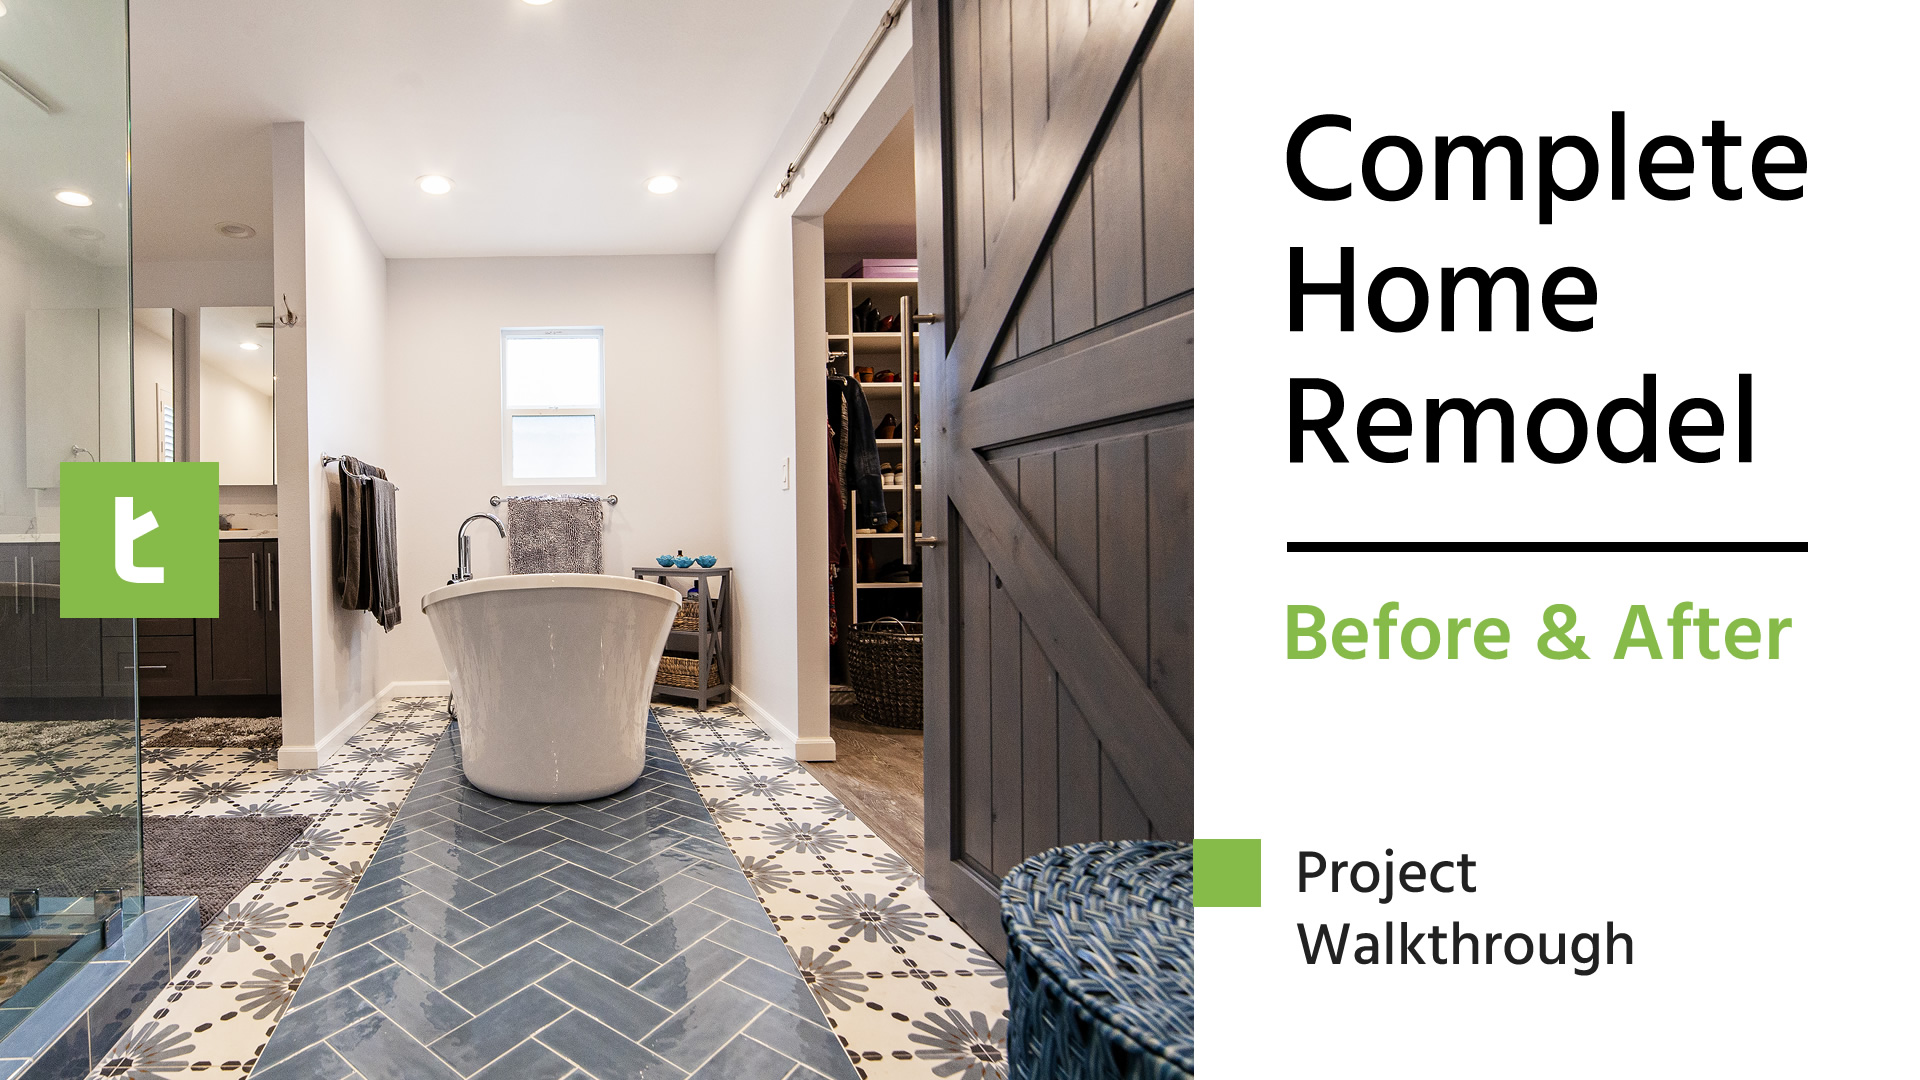 Complete Home Remodel   Before & After Transformation